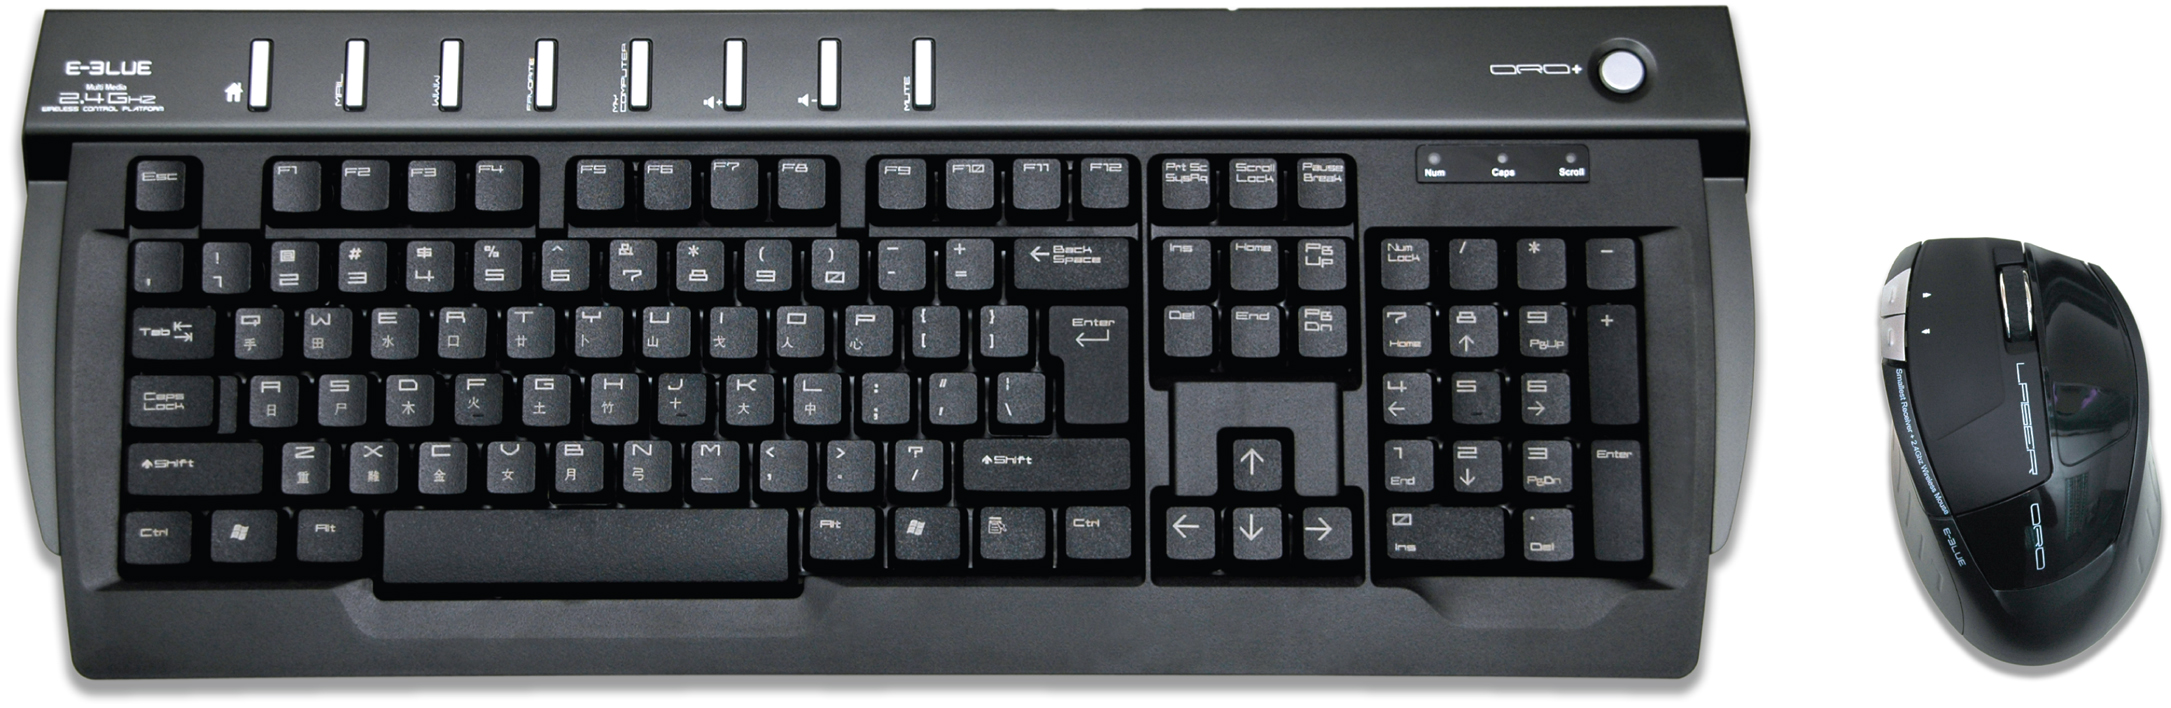 Oro+ Laser 2.4G Wireless Keyboard + Laser Mouse Combo